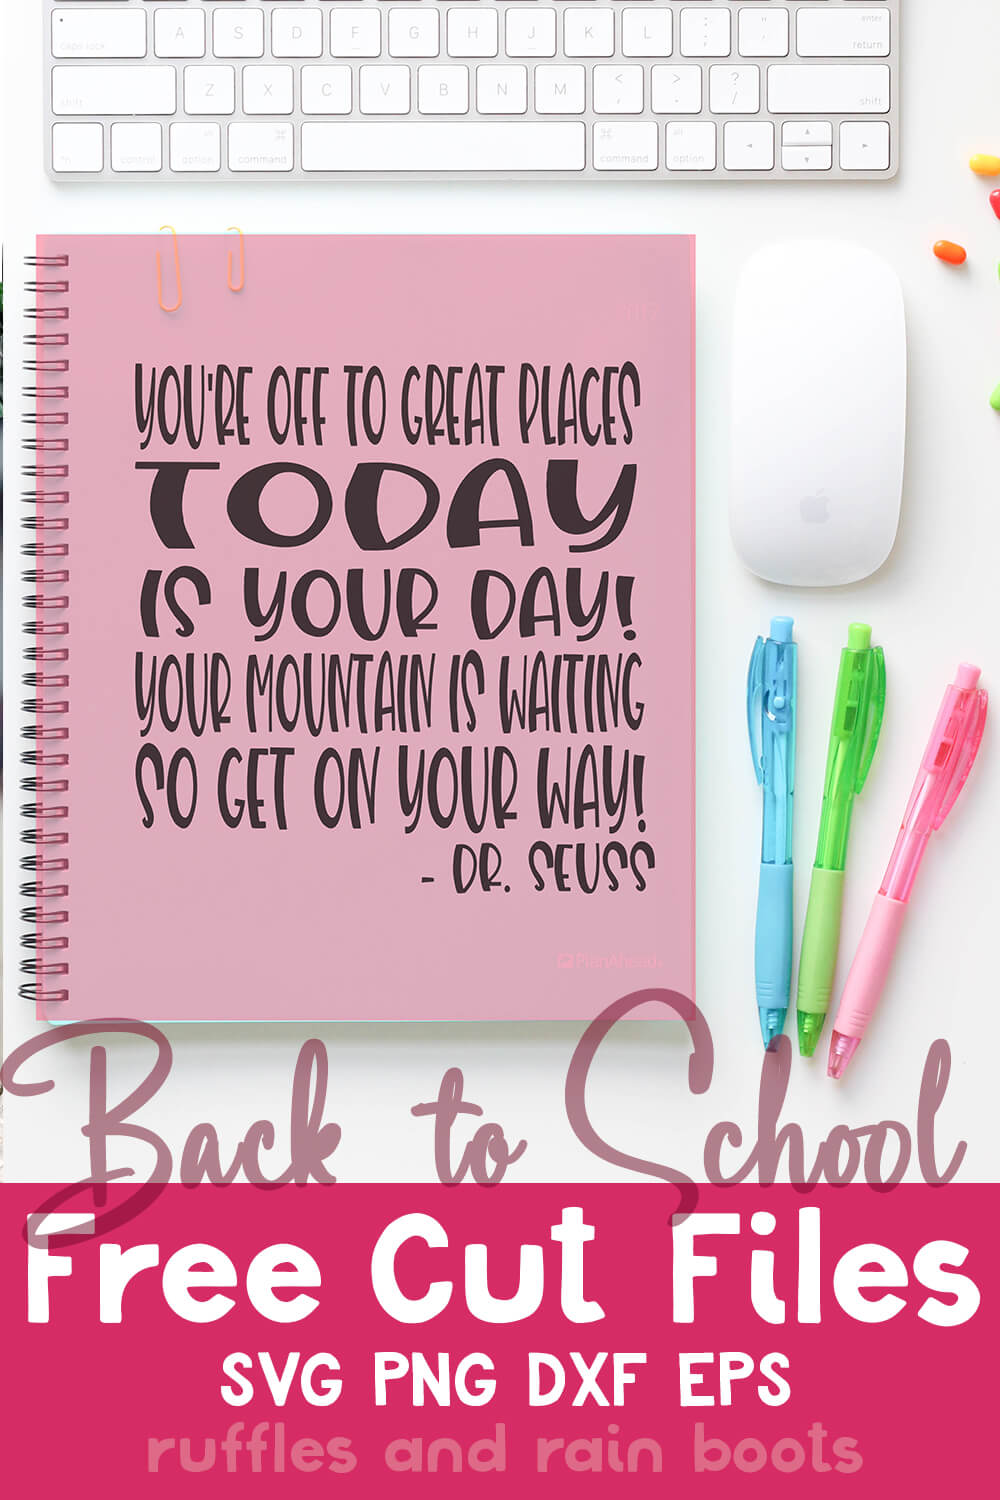 Dr. Seuss Quote back to school svg for Cricut or Silhouette on Notebook with text which reads back to school free cut files svg png dxf eps